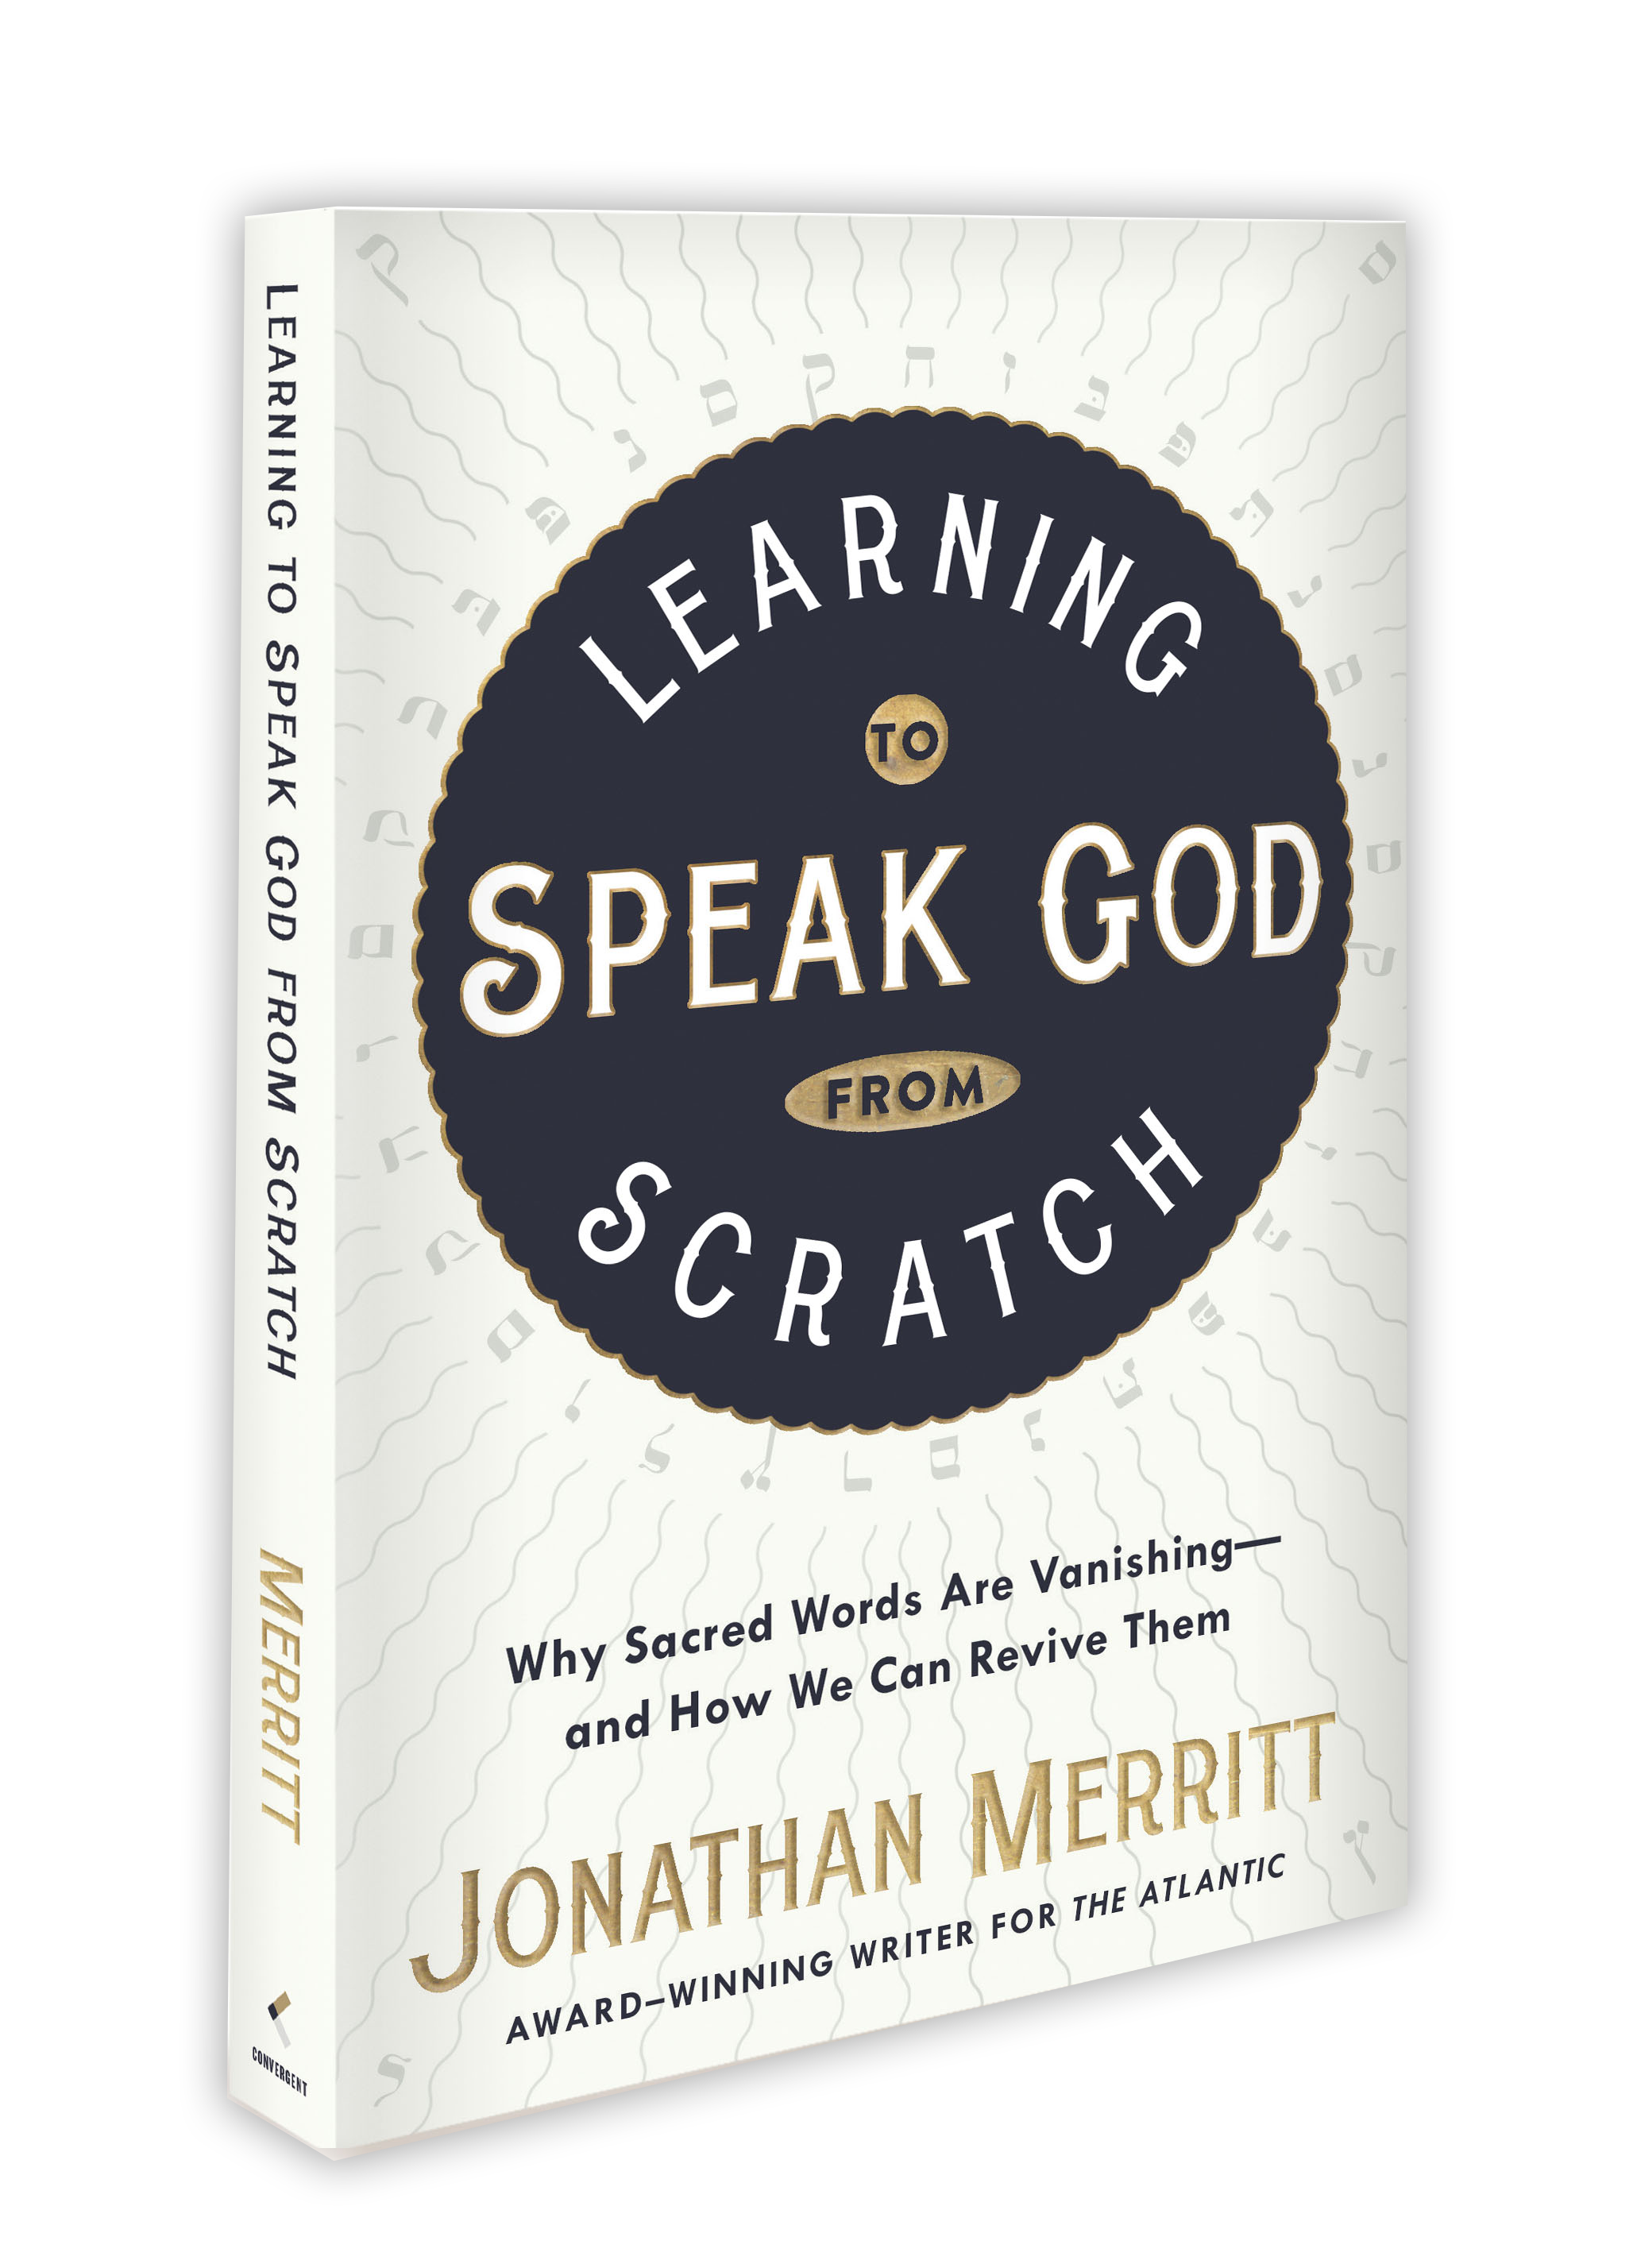 Learning to Speak God from Scratch_3D cover with Convergent logo.jpg